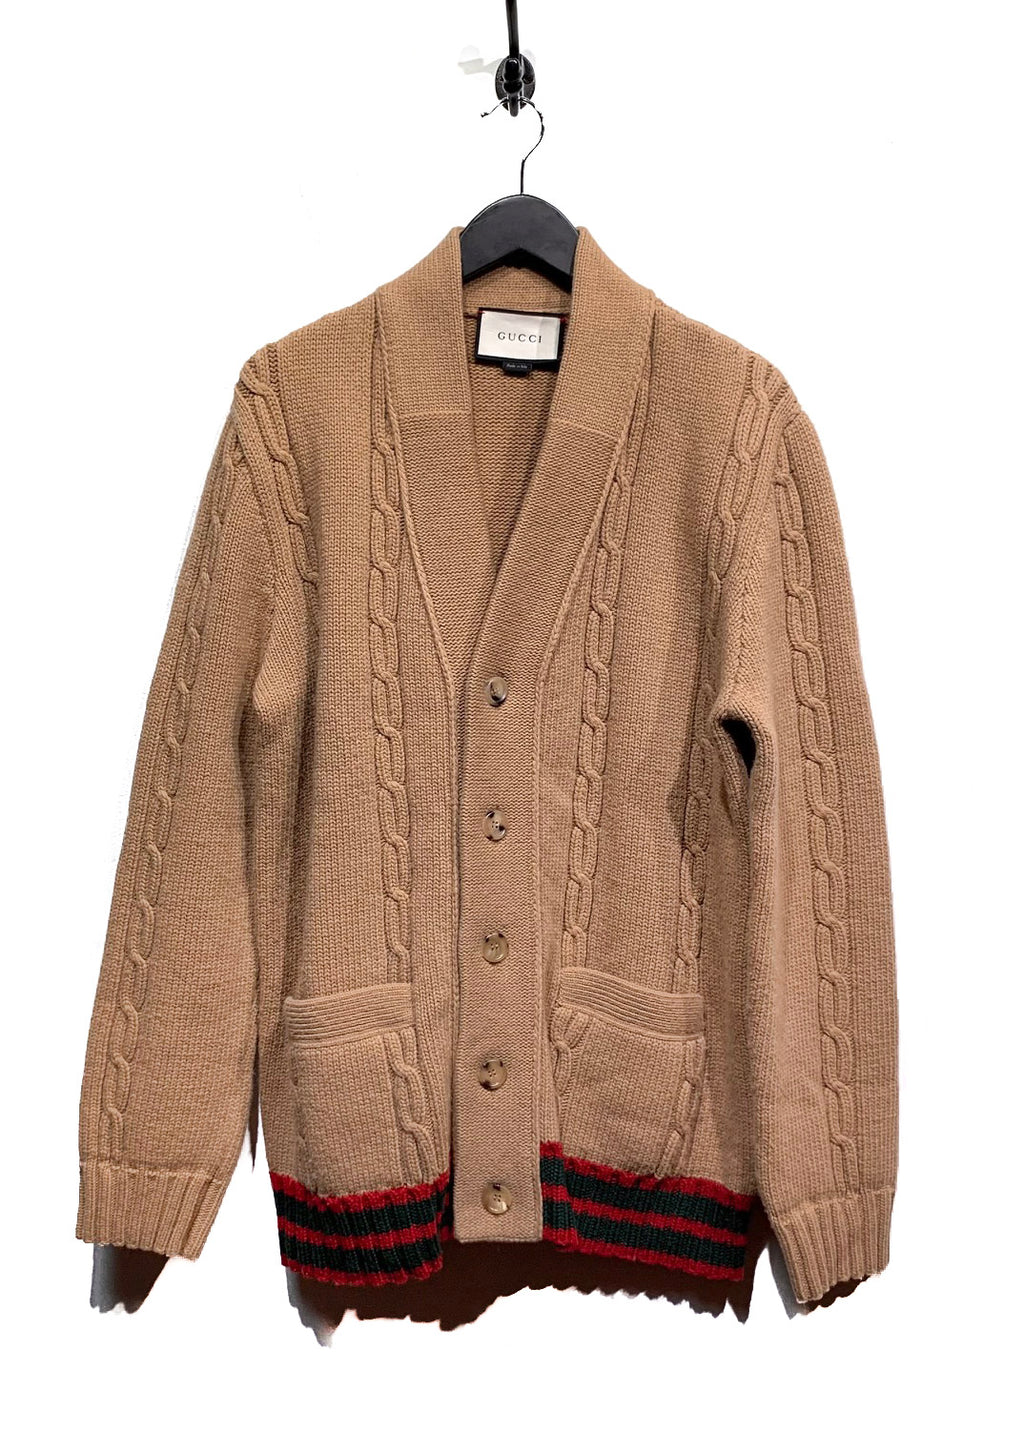 Gucci Beige Cable Knit Cardigan With Web Bottom